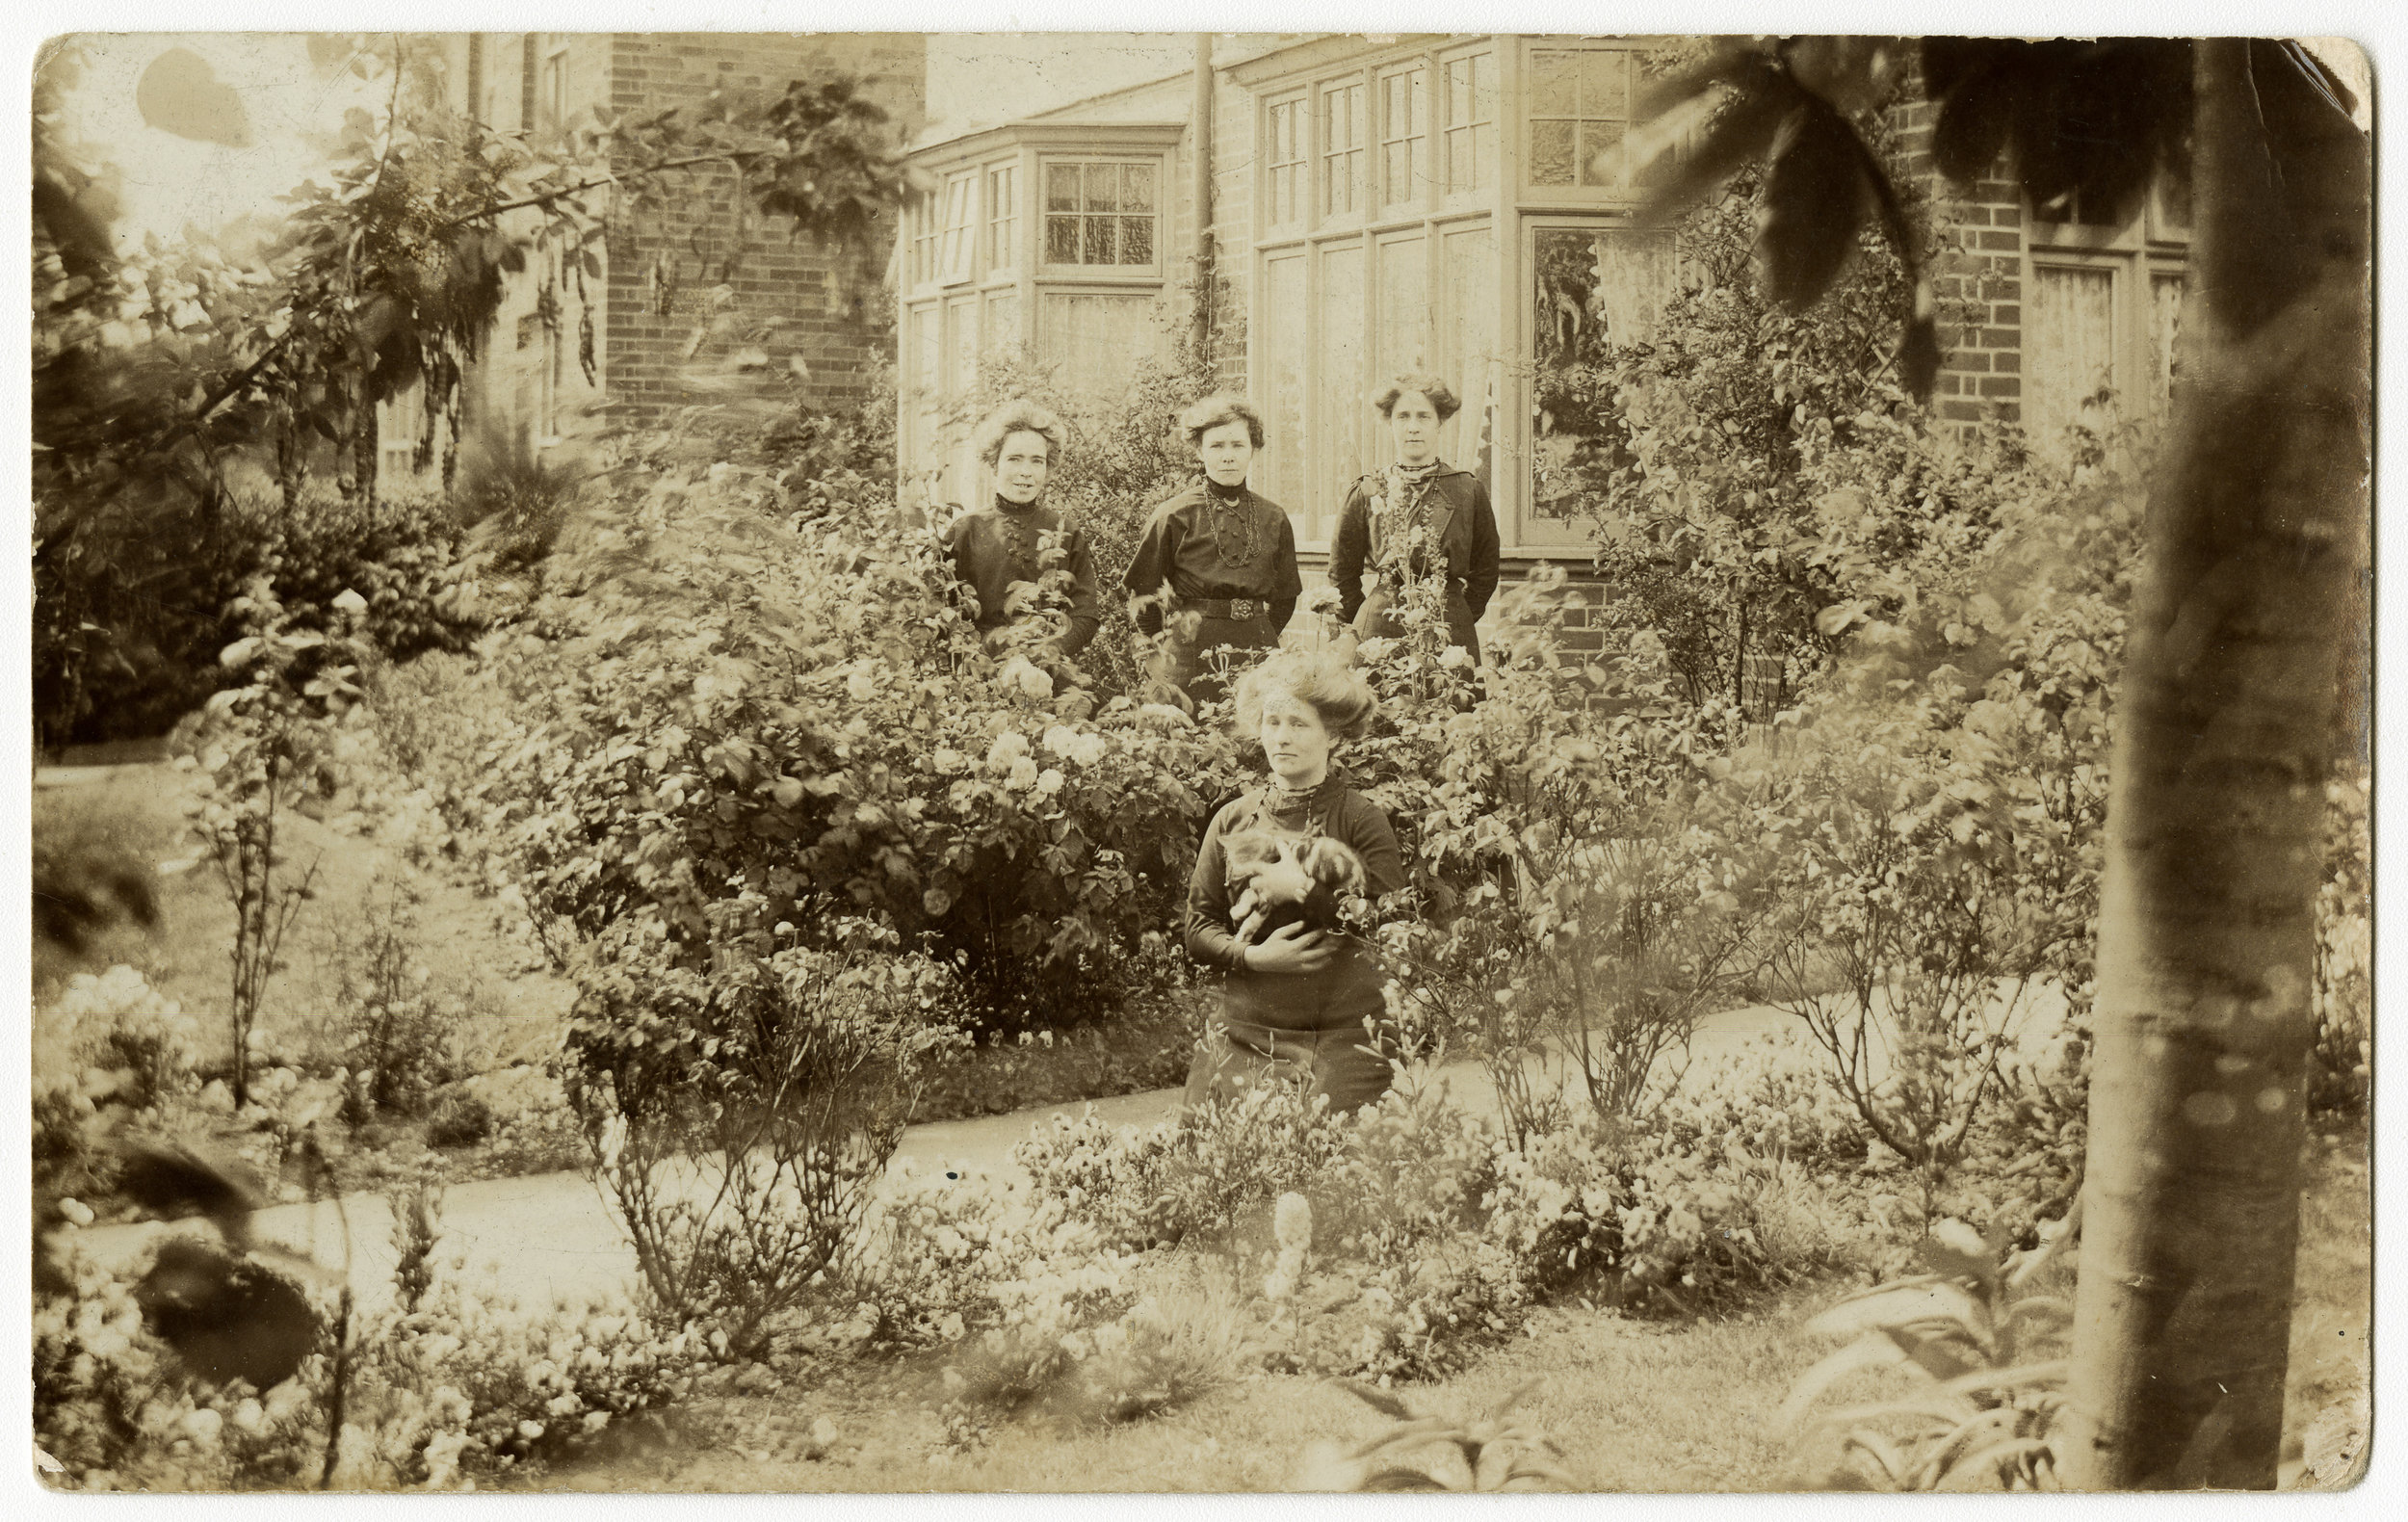 Among the roses of a suburban house , a group on women pose in similar black collared dresses, one woman holding a cat -about 1915